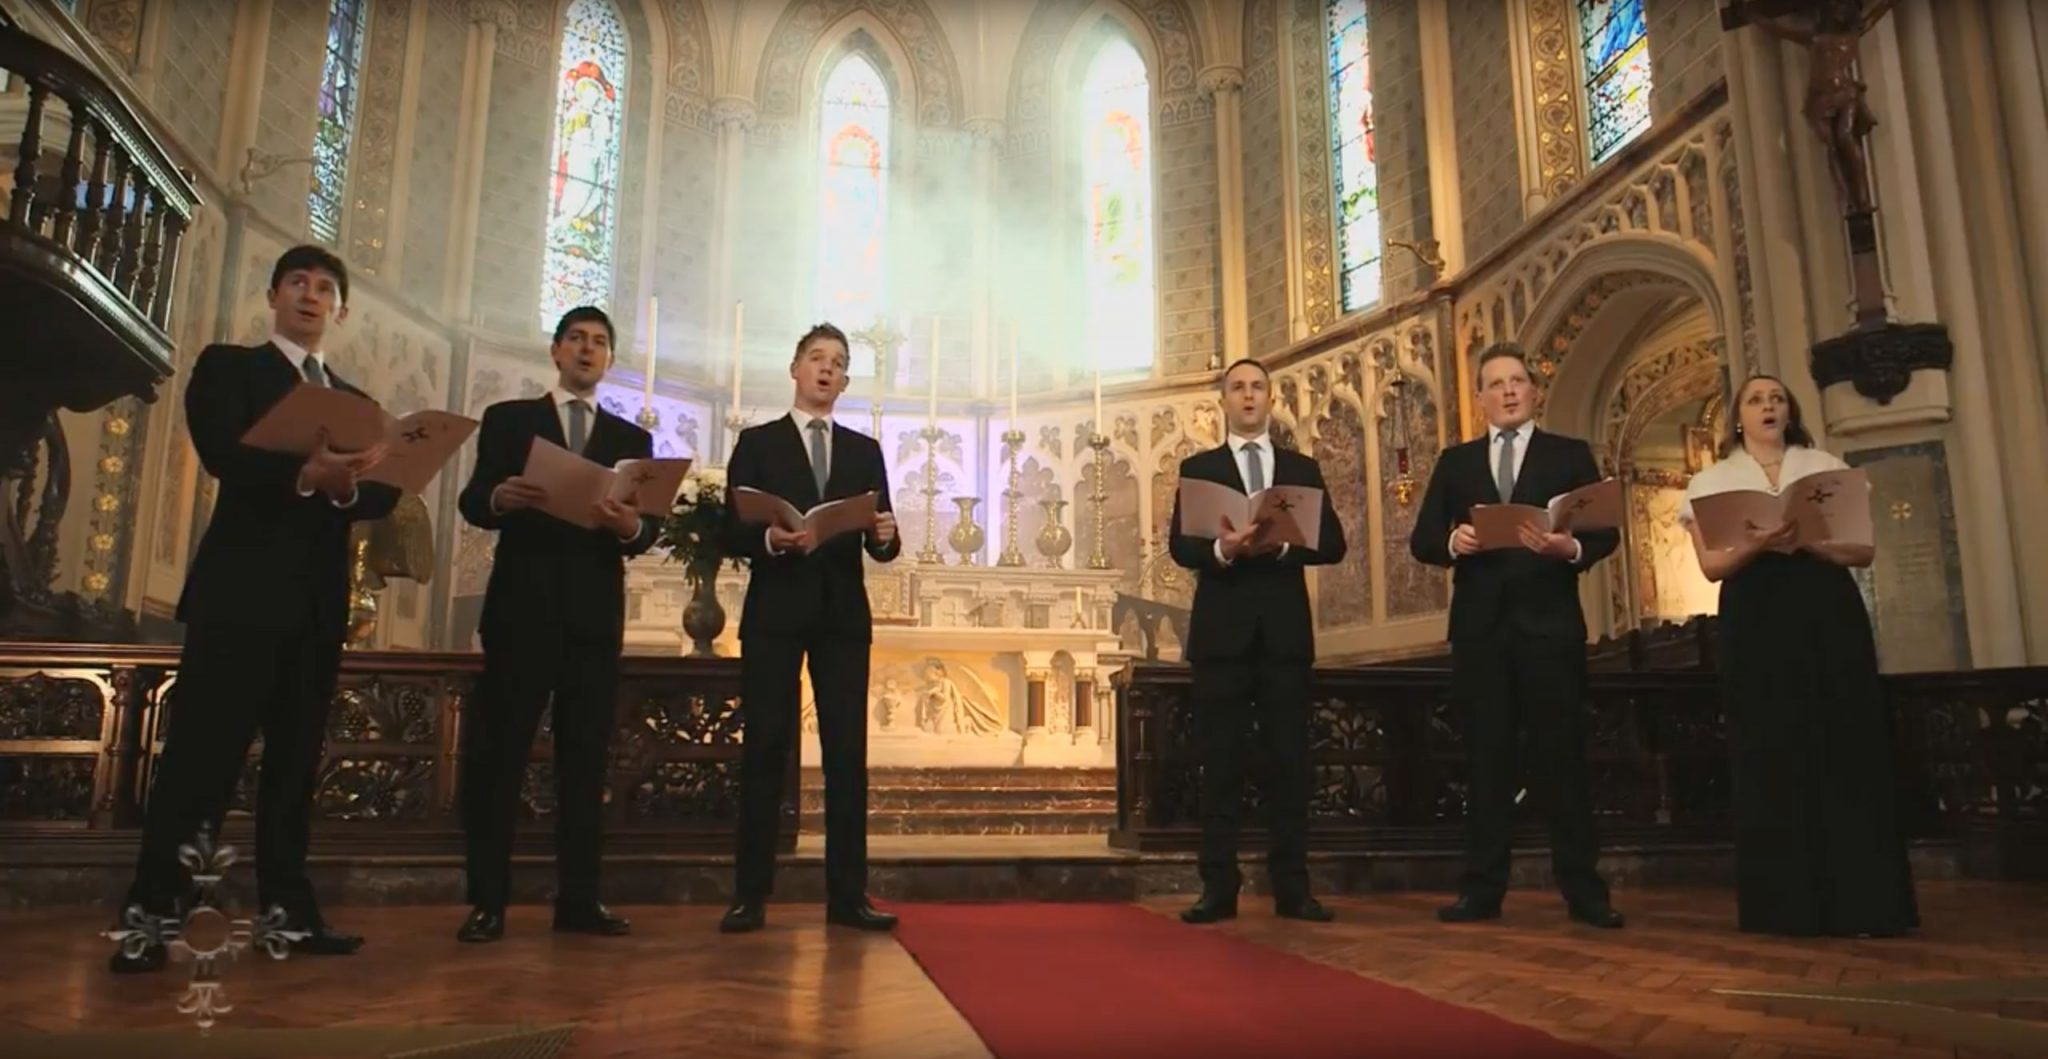 crux church st marys dublin ireland wedding music choir choral quartet